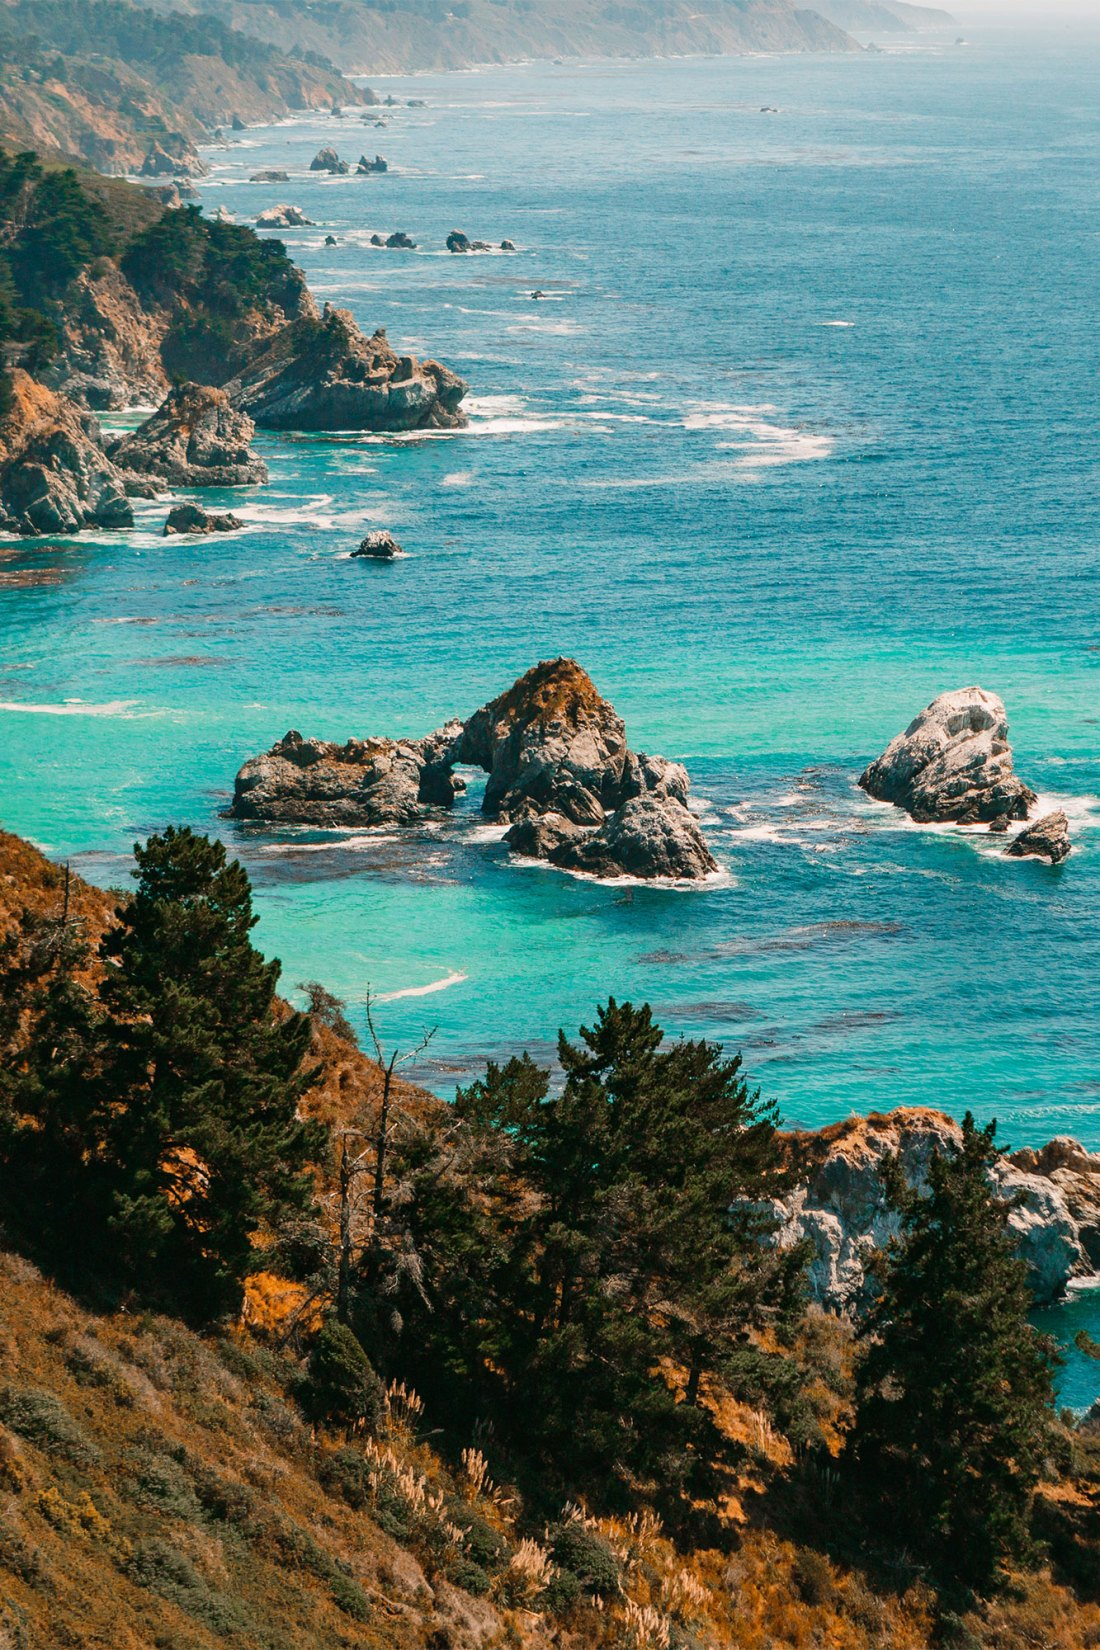 Julia Pfeiffer Burns State Park Vista Point​ | as seen on the Local Love and Wanderlust Blog